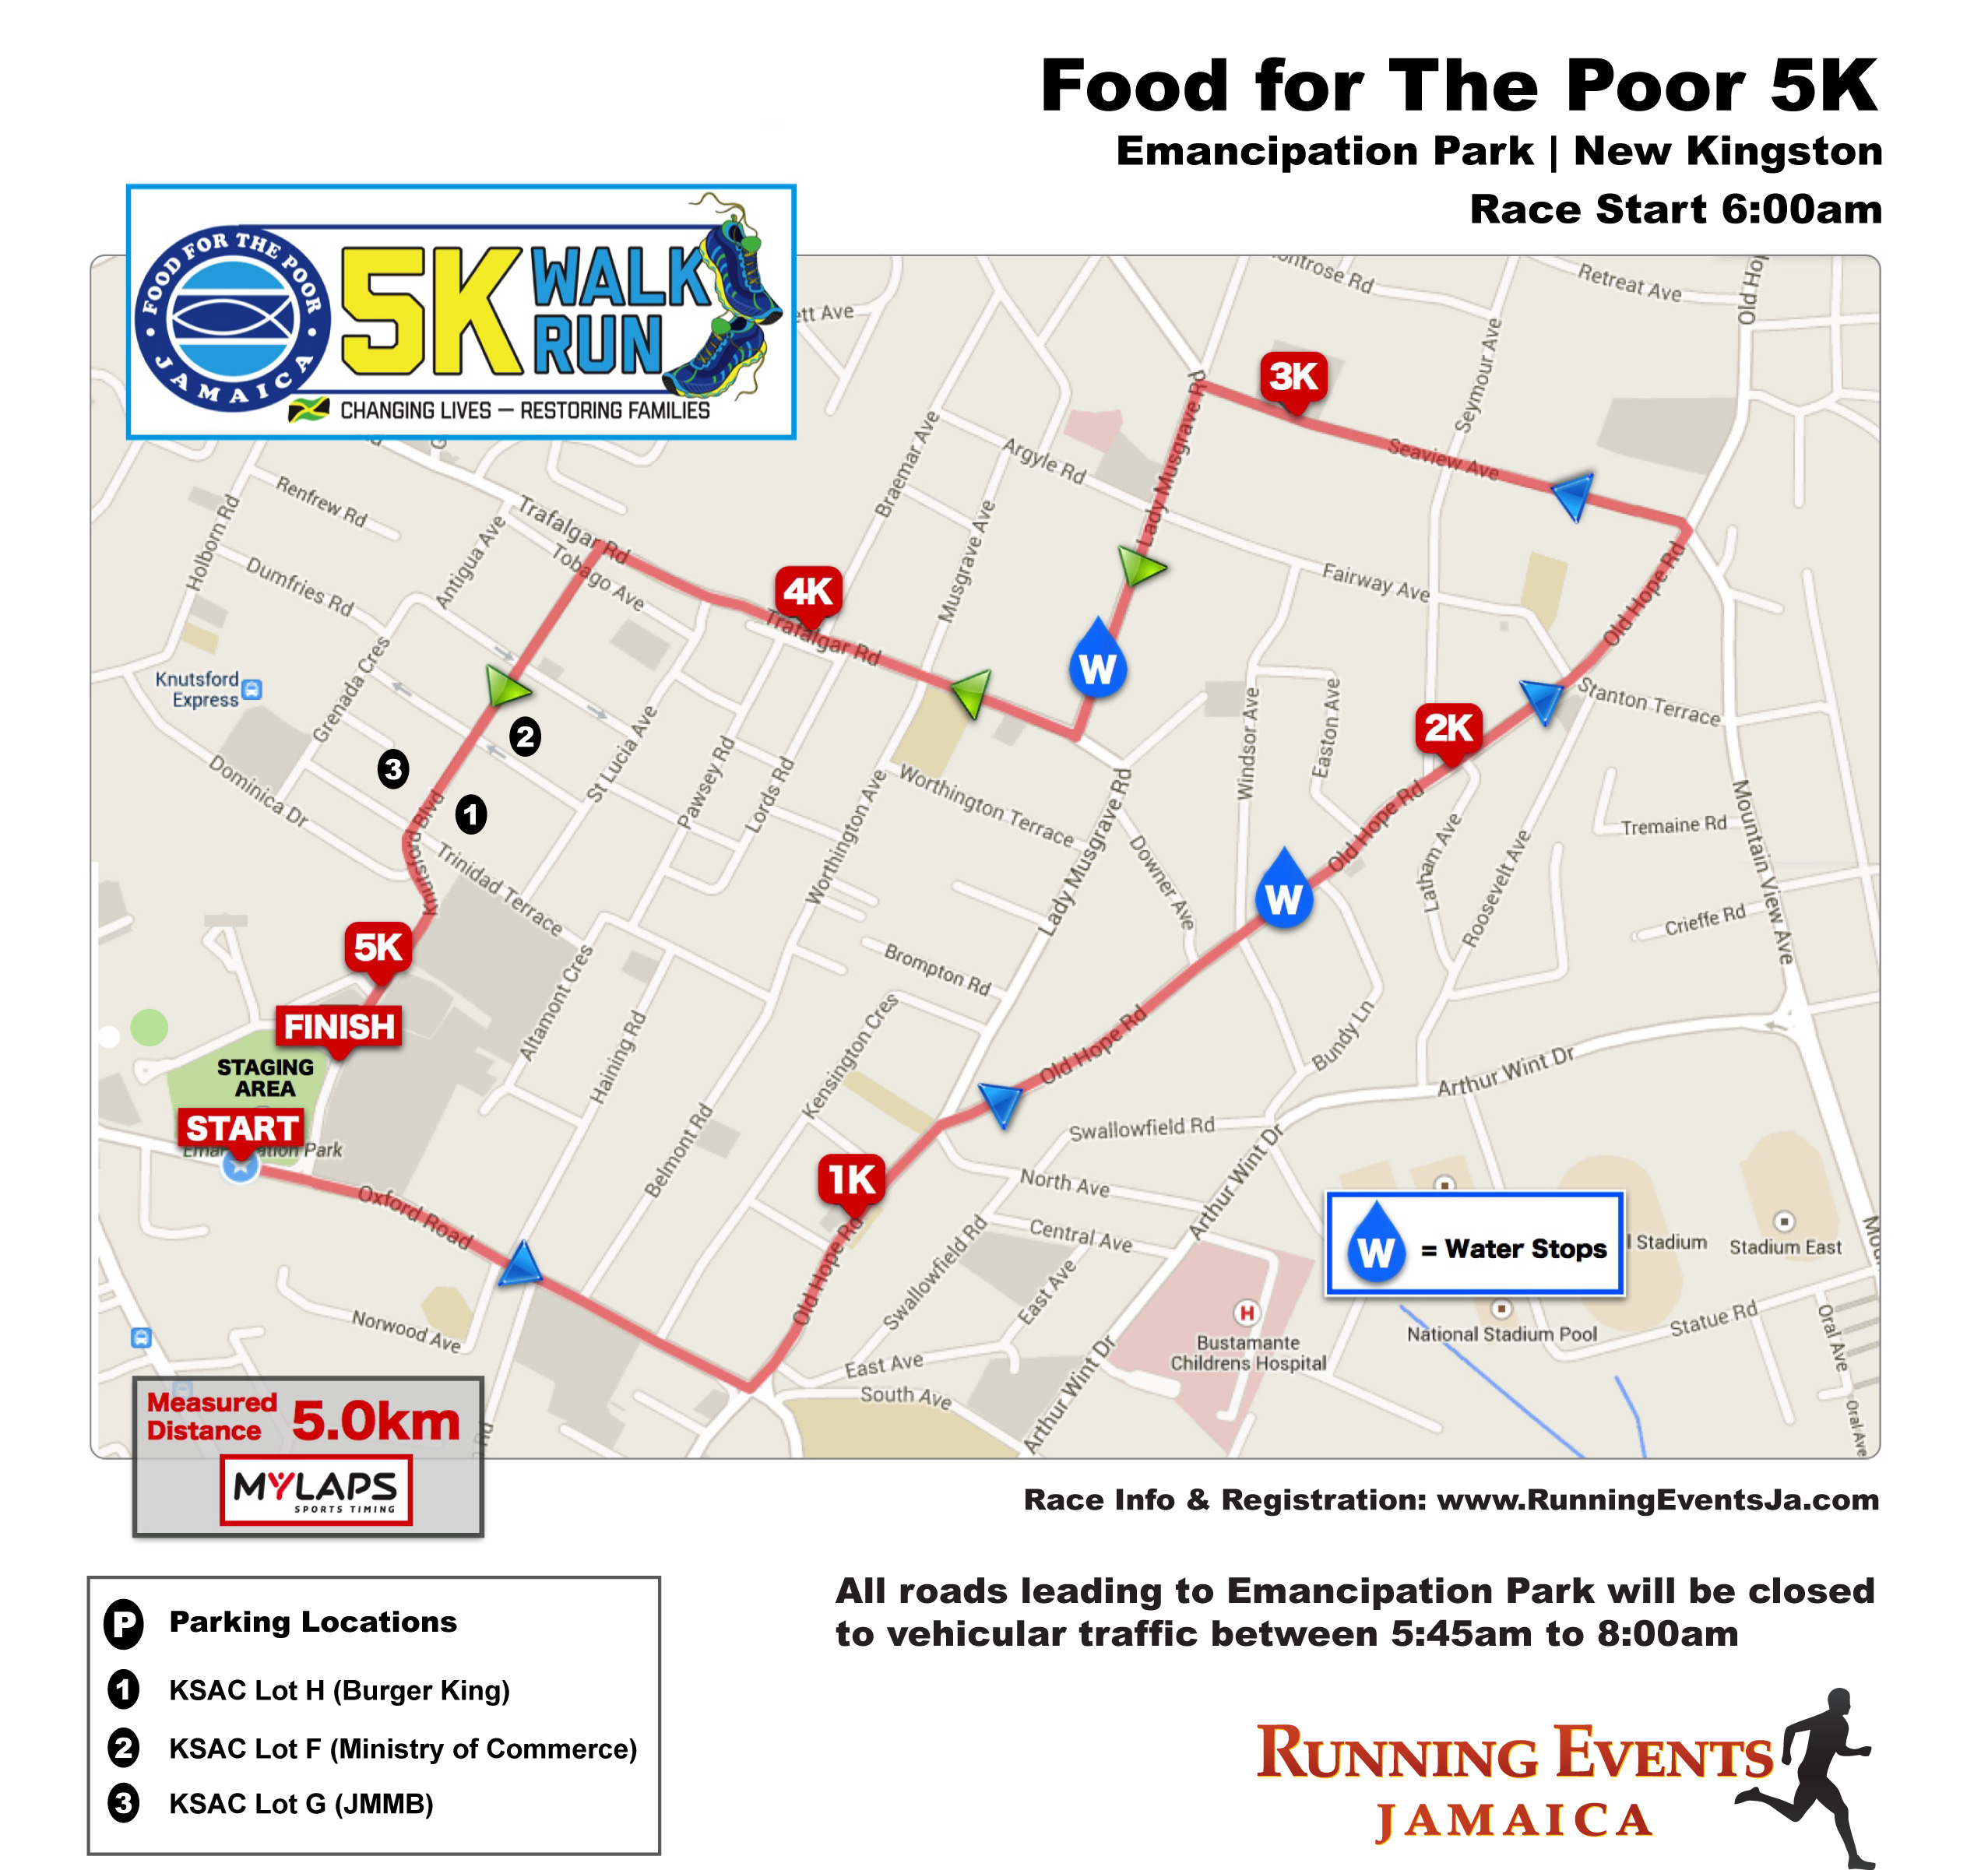 Food For The Poor 5K